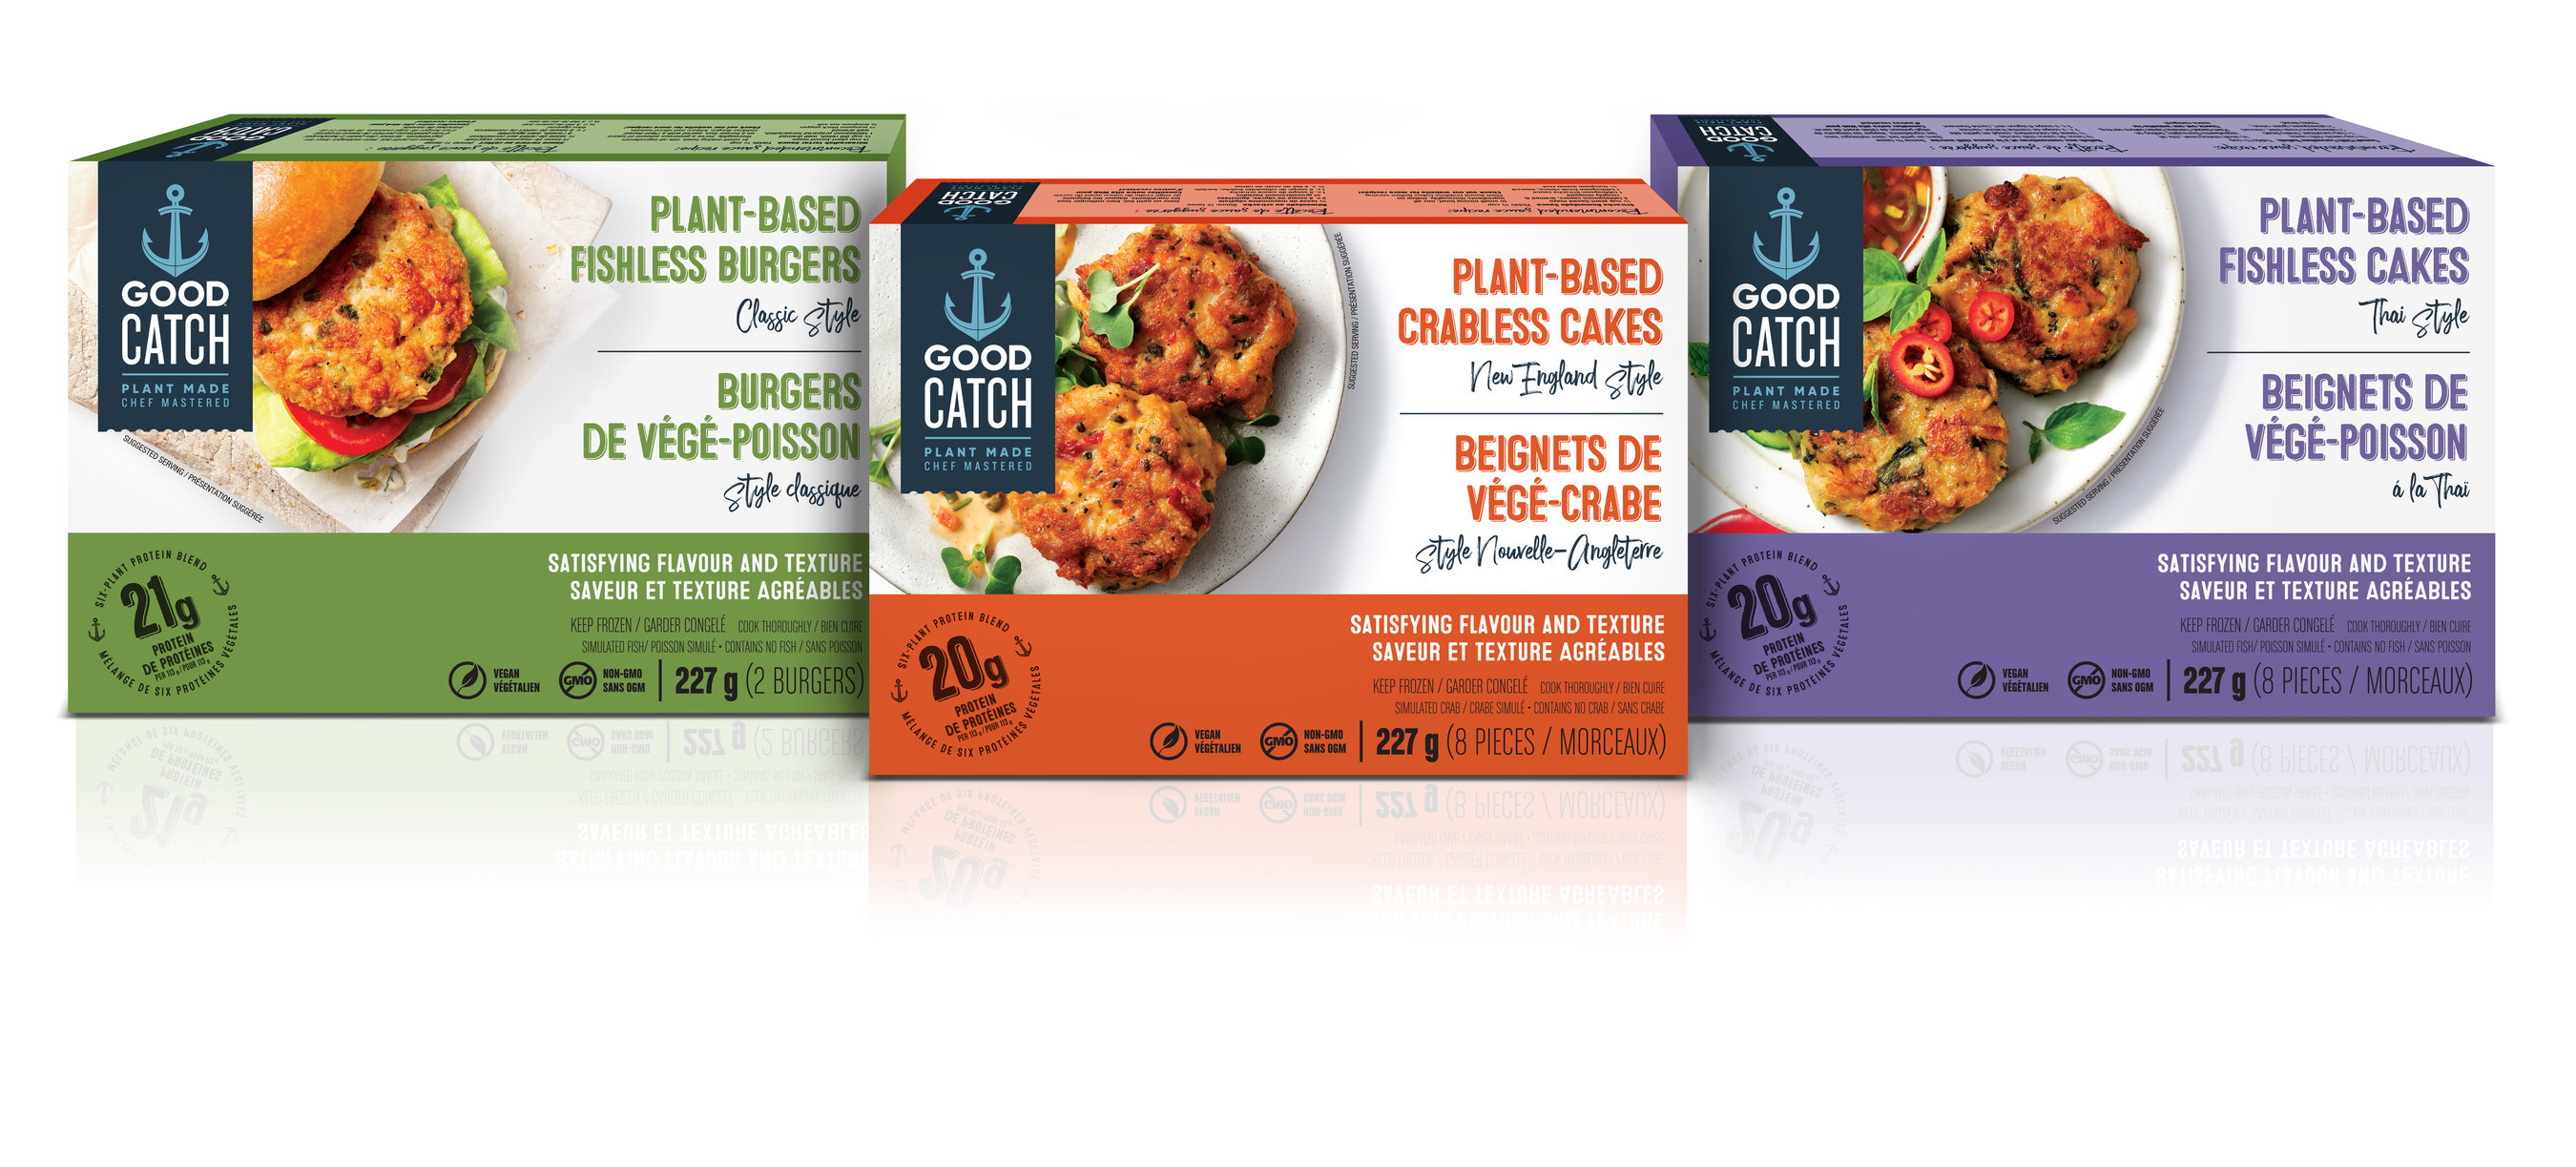 Good Catch Plant-Based Seafood Expands to Canada, Available in Over 600 Stores